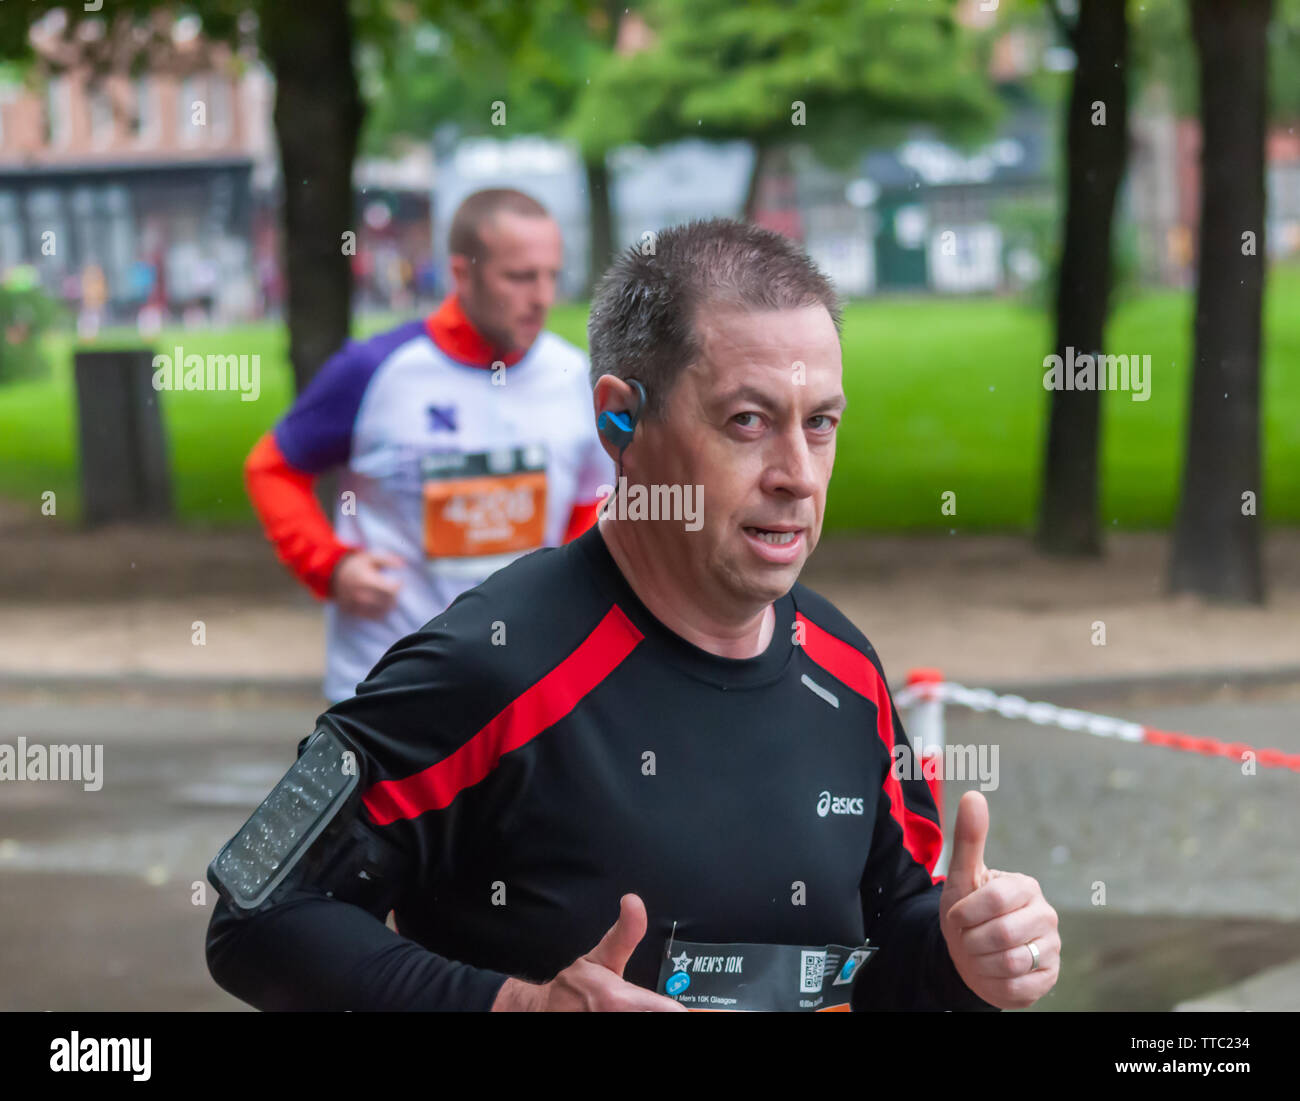 Glasgow, Scotland, UK. 16th June, 2019. Runners enter Glasgow Green during the Men's 10K Run which has been an annual event since 2004. Thousands of runners take to the streets of the city to get fit, fundraise, and raise awareness of men's health issues. The run coincides with Fathers Day and starts at the Riverside Museum and  finishes at George Square. Credit: Skully/Alamy Live News - Stock Image